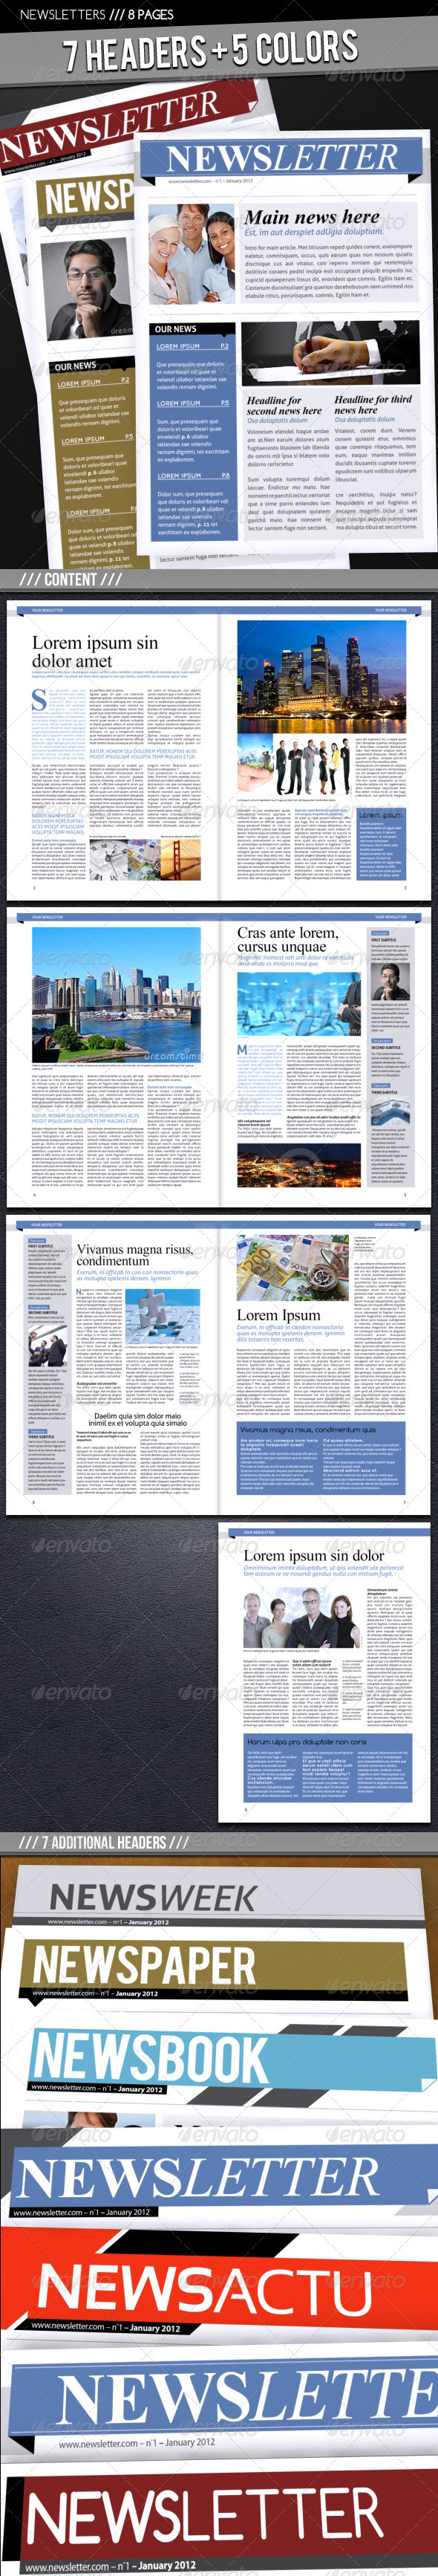 Business Newsletter A4 - Newsletters Print Templates